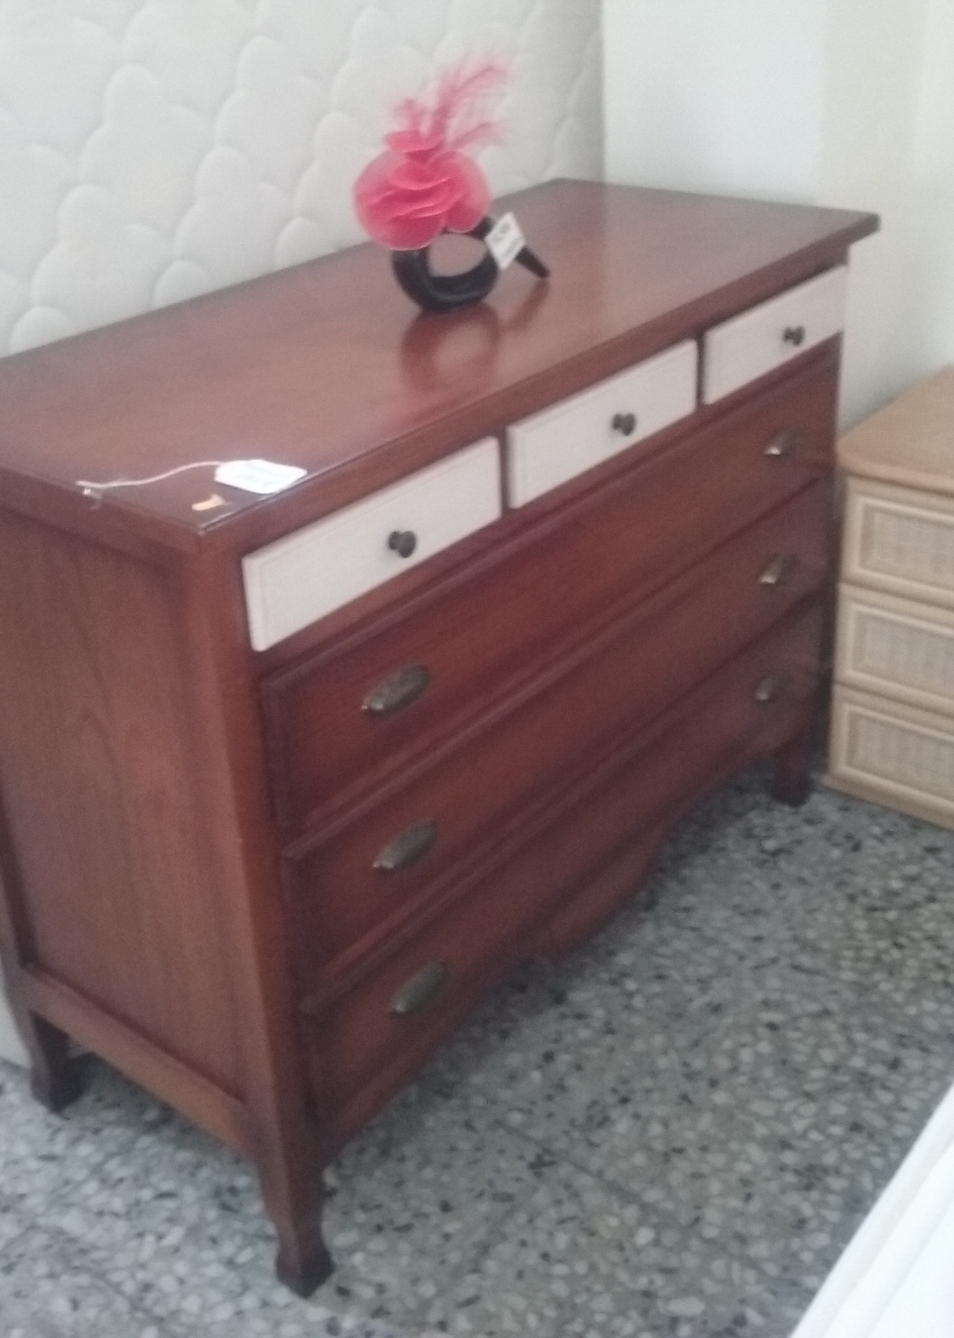 New2you Furniture Second Hand Chest Of Drawers For The Bedroom Clearance Items Ref H703